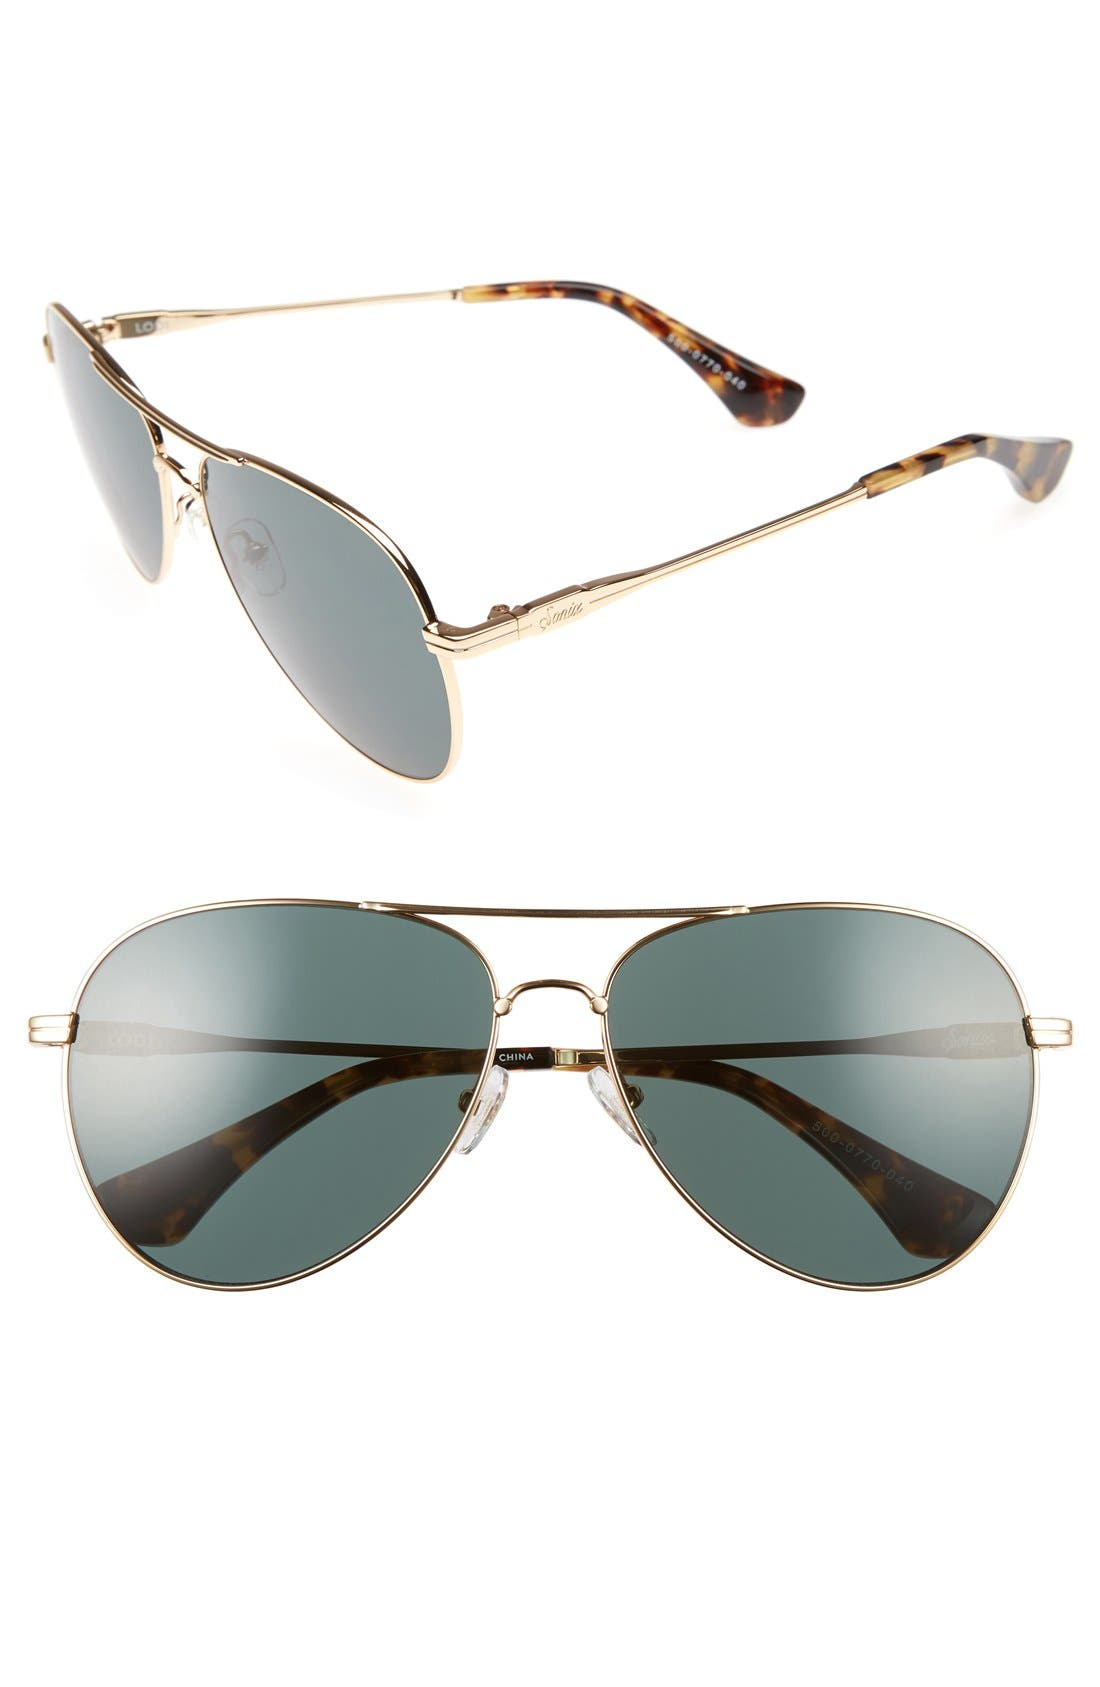 Sonix Lodi 62mm Mirrored Aviator Sunglasses